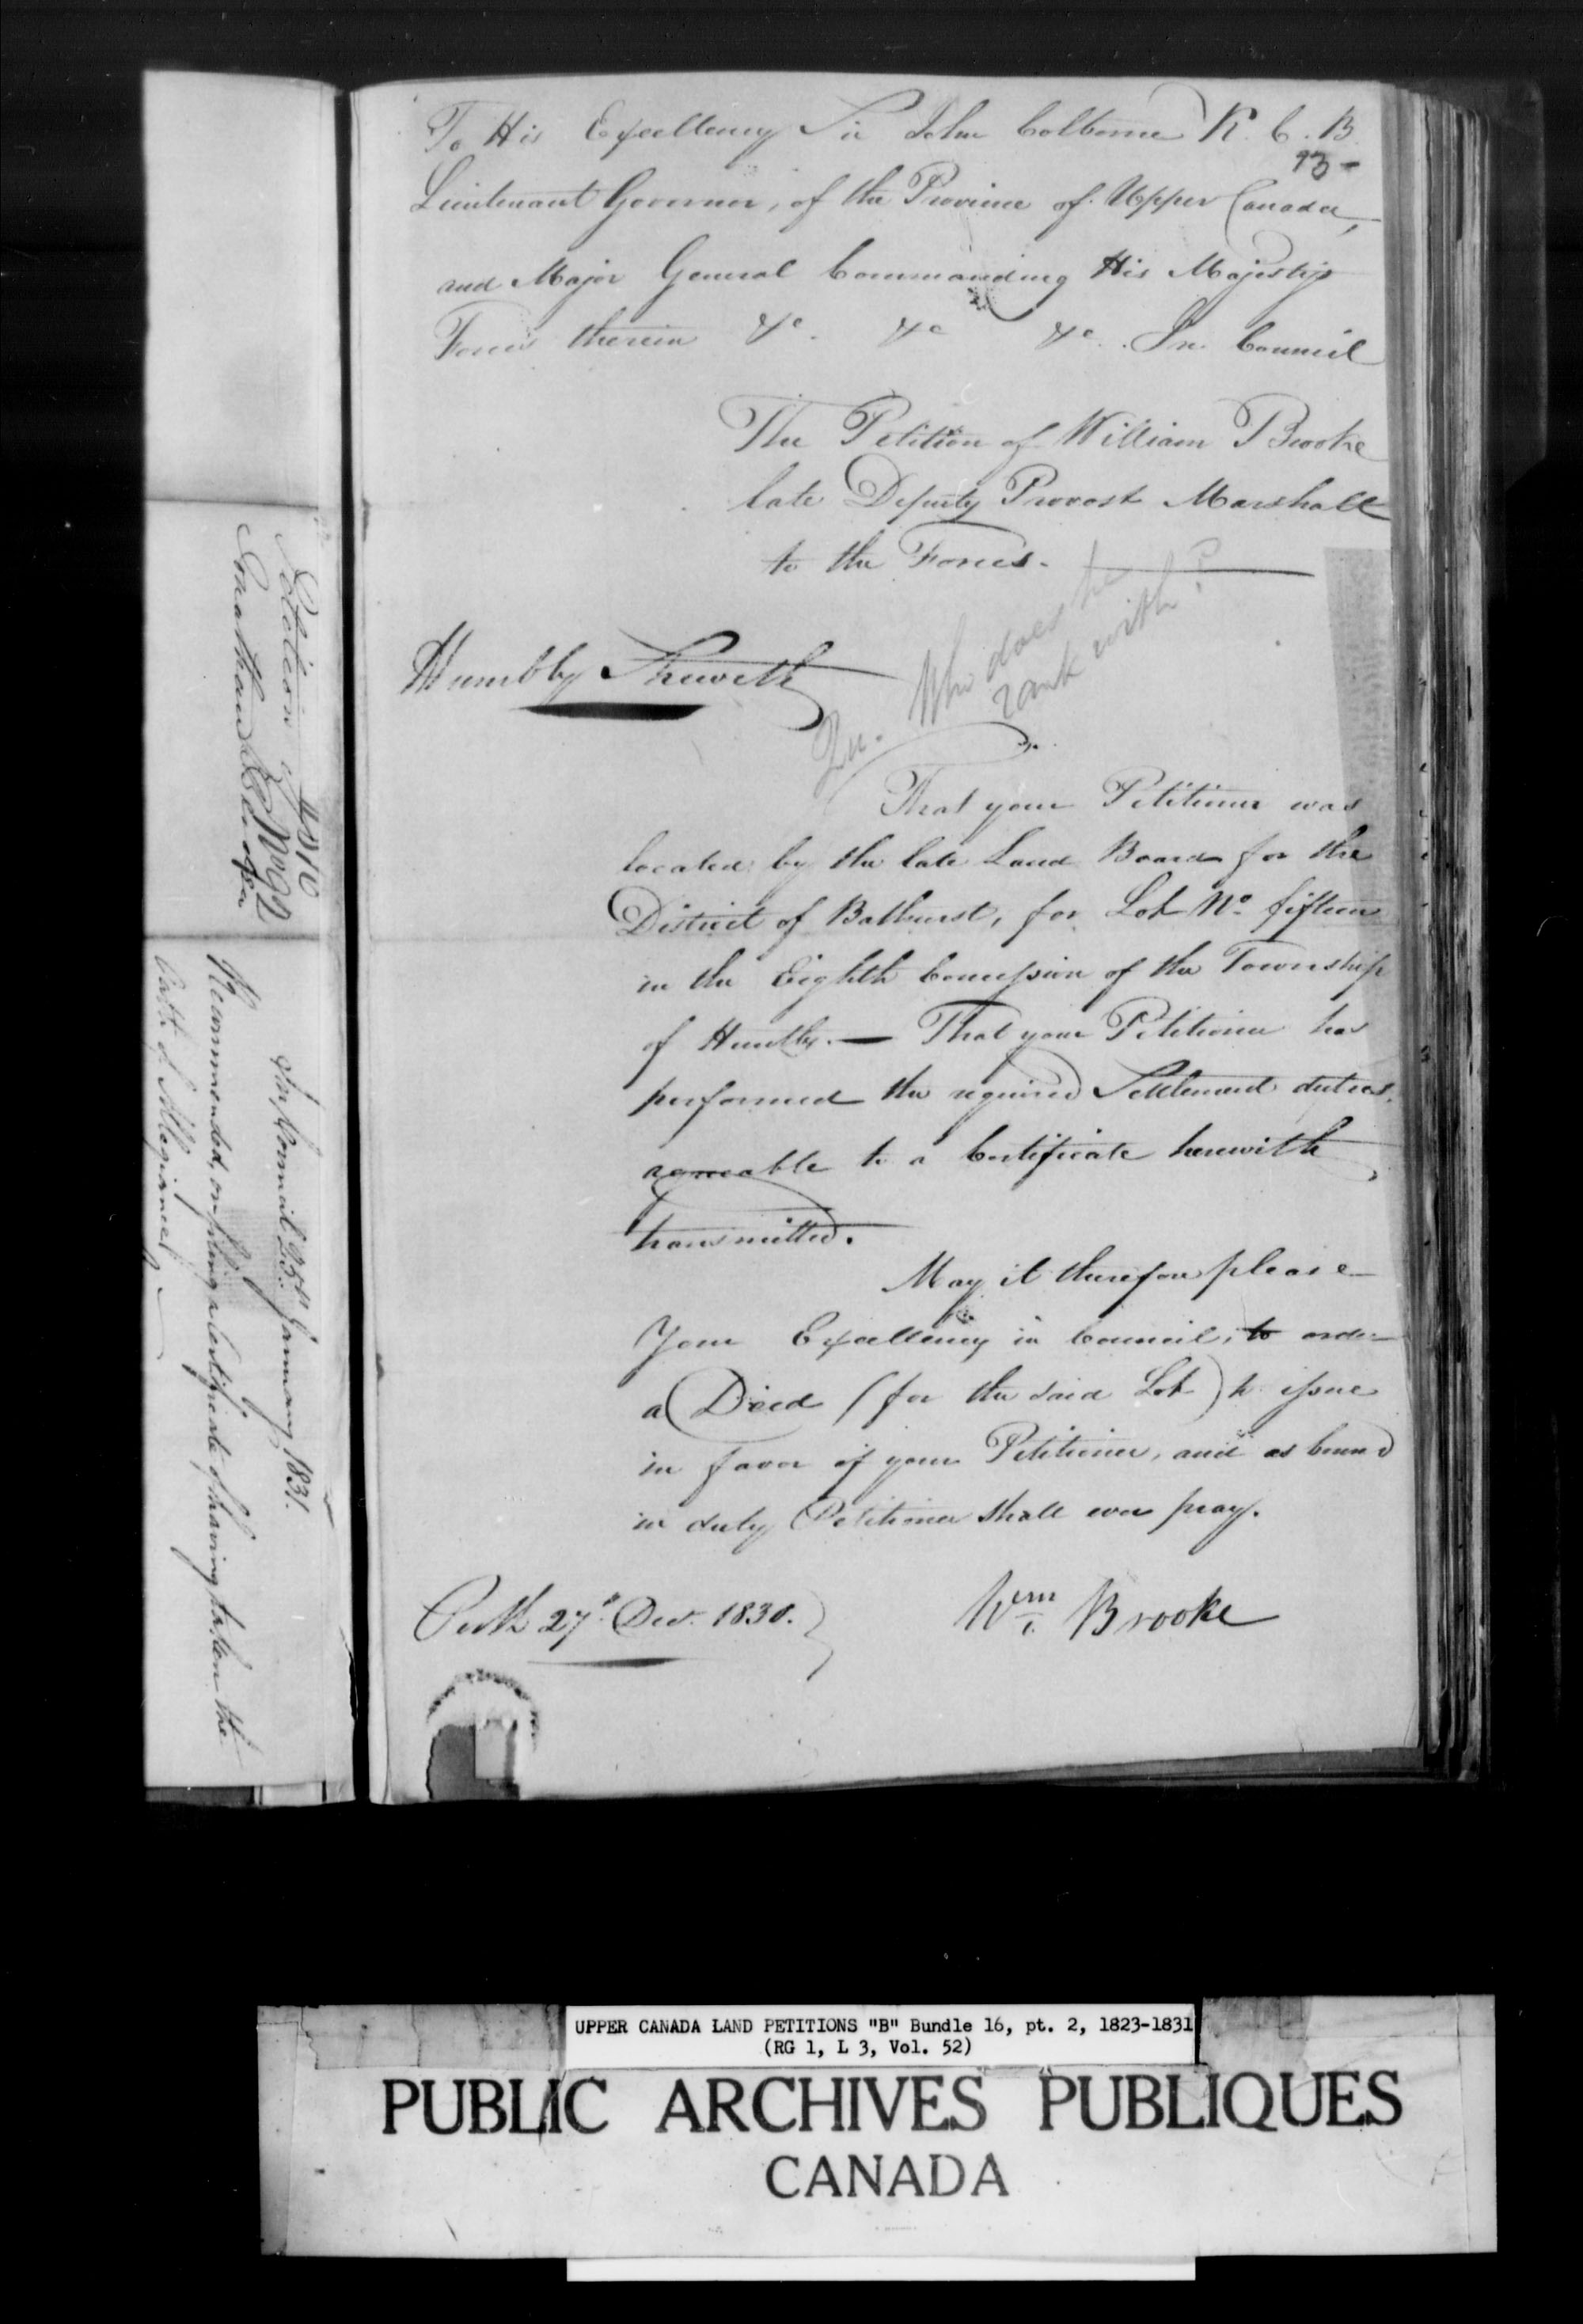 Title: Upper Canada Land Petitions (1763-1865) - Mikan Number: 205131 - Microform: c-1629